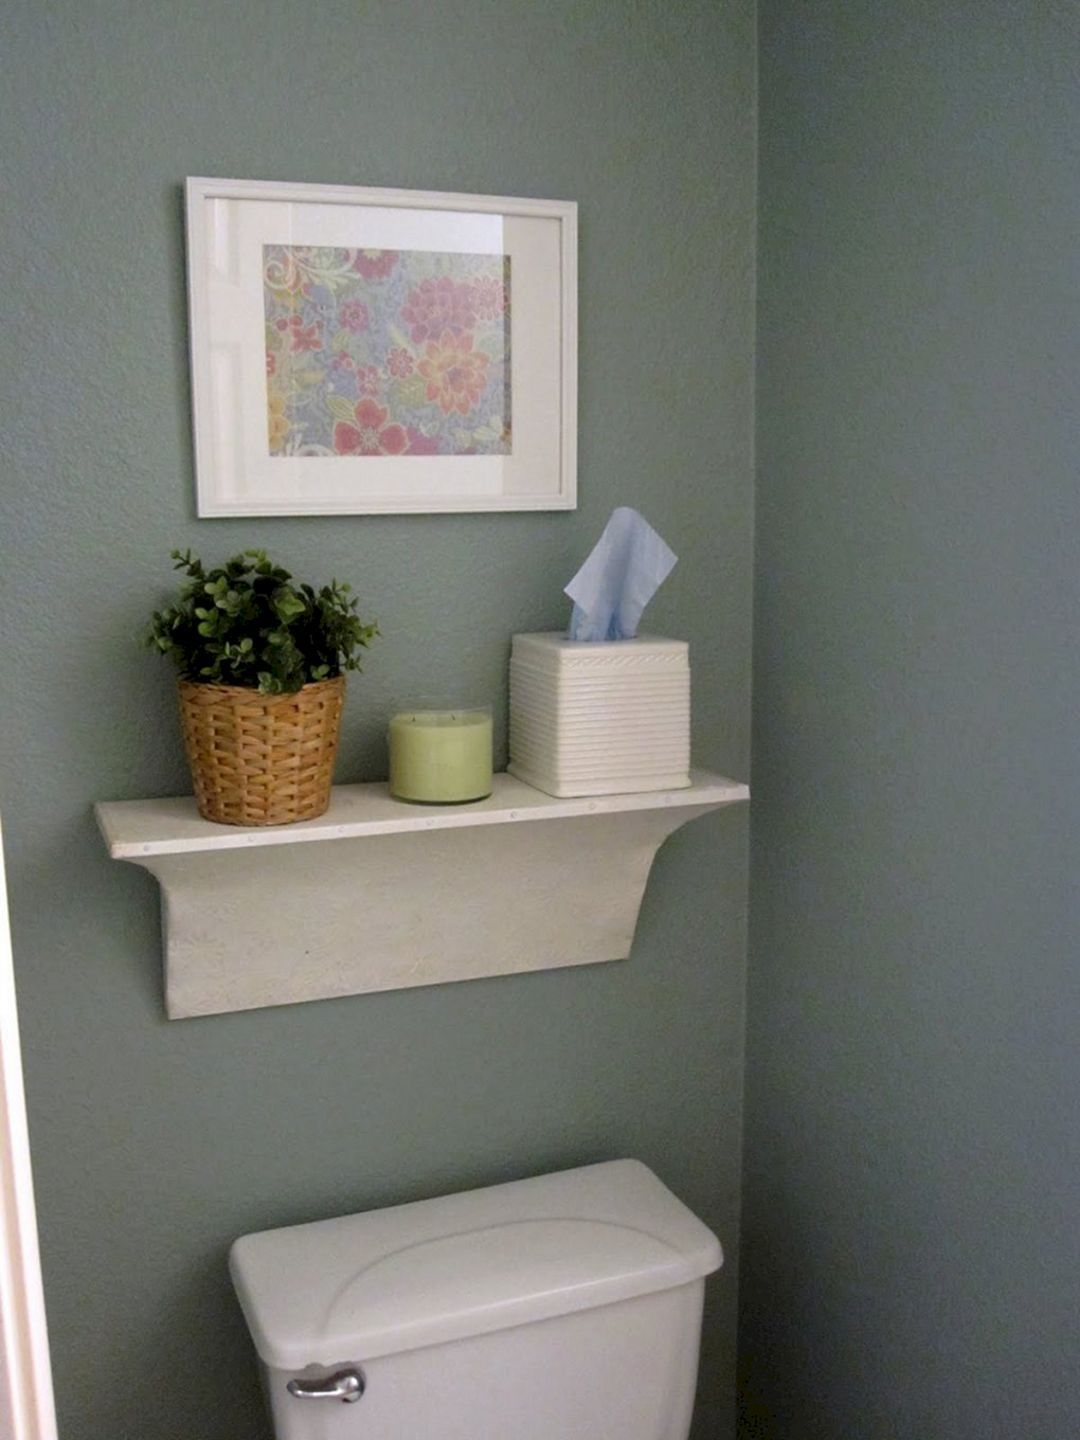 jaw dropping cool tips how make floating shelves bathroom white iron corner rack easy shoe wall mounted box shelving units fancy shelf design tures weathered wood diy coat corona